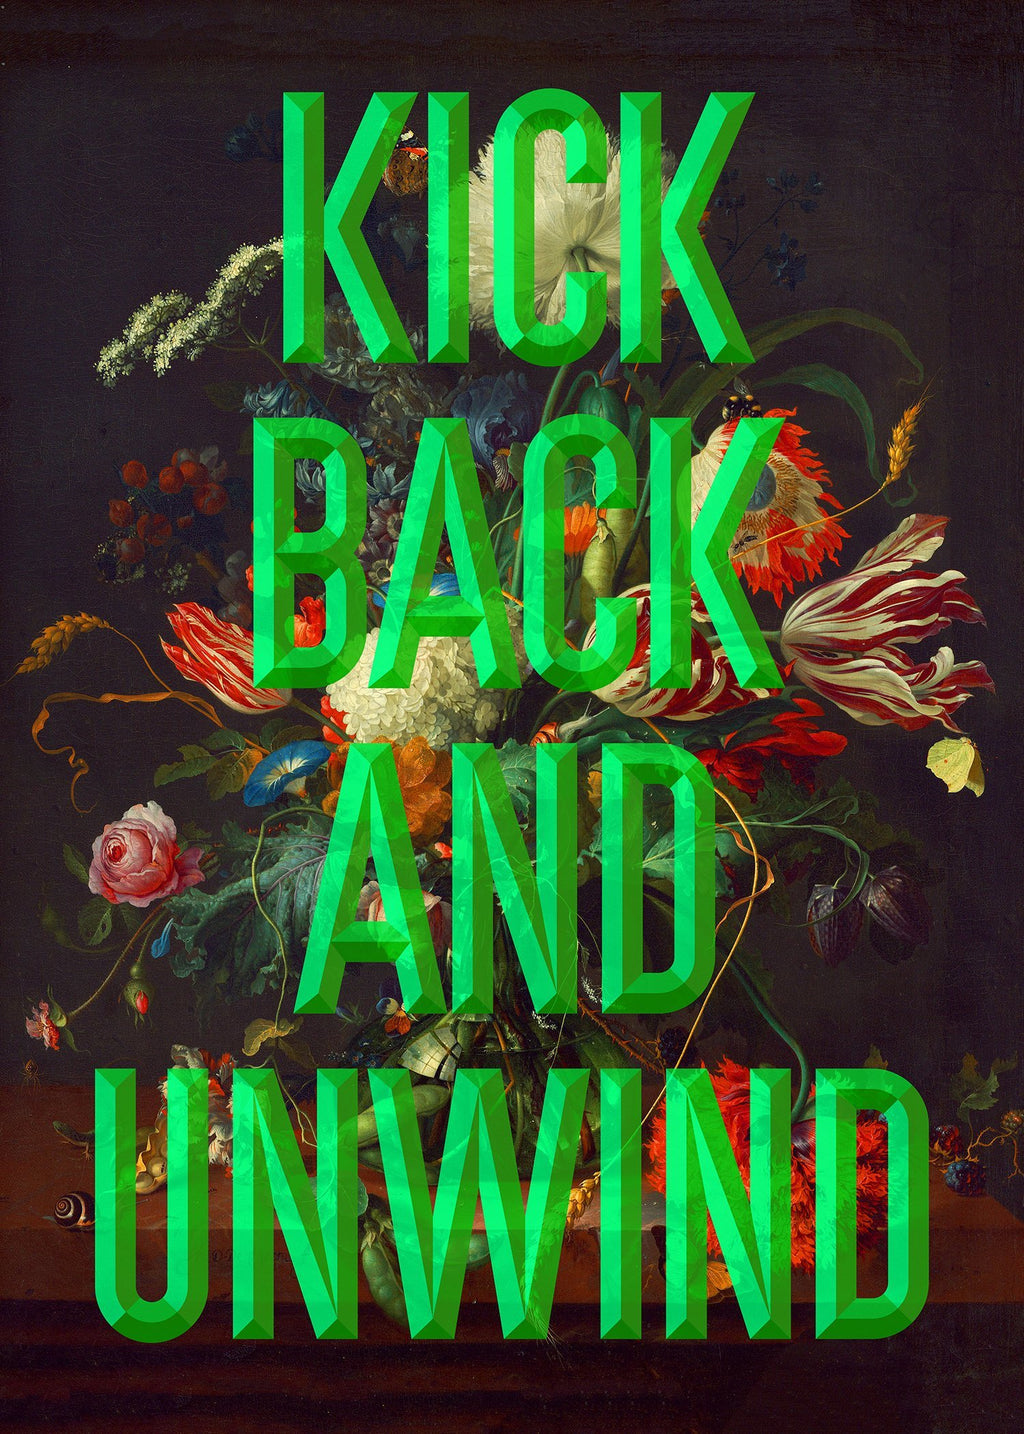 Kick Back Typography Print